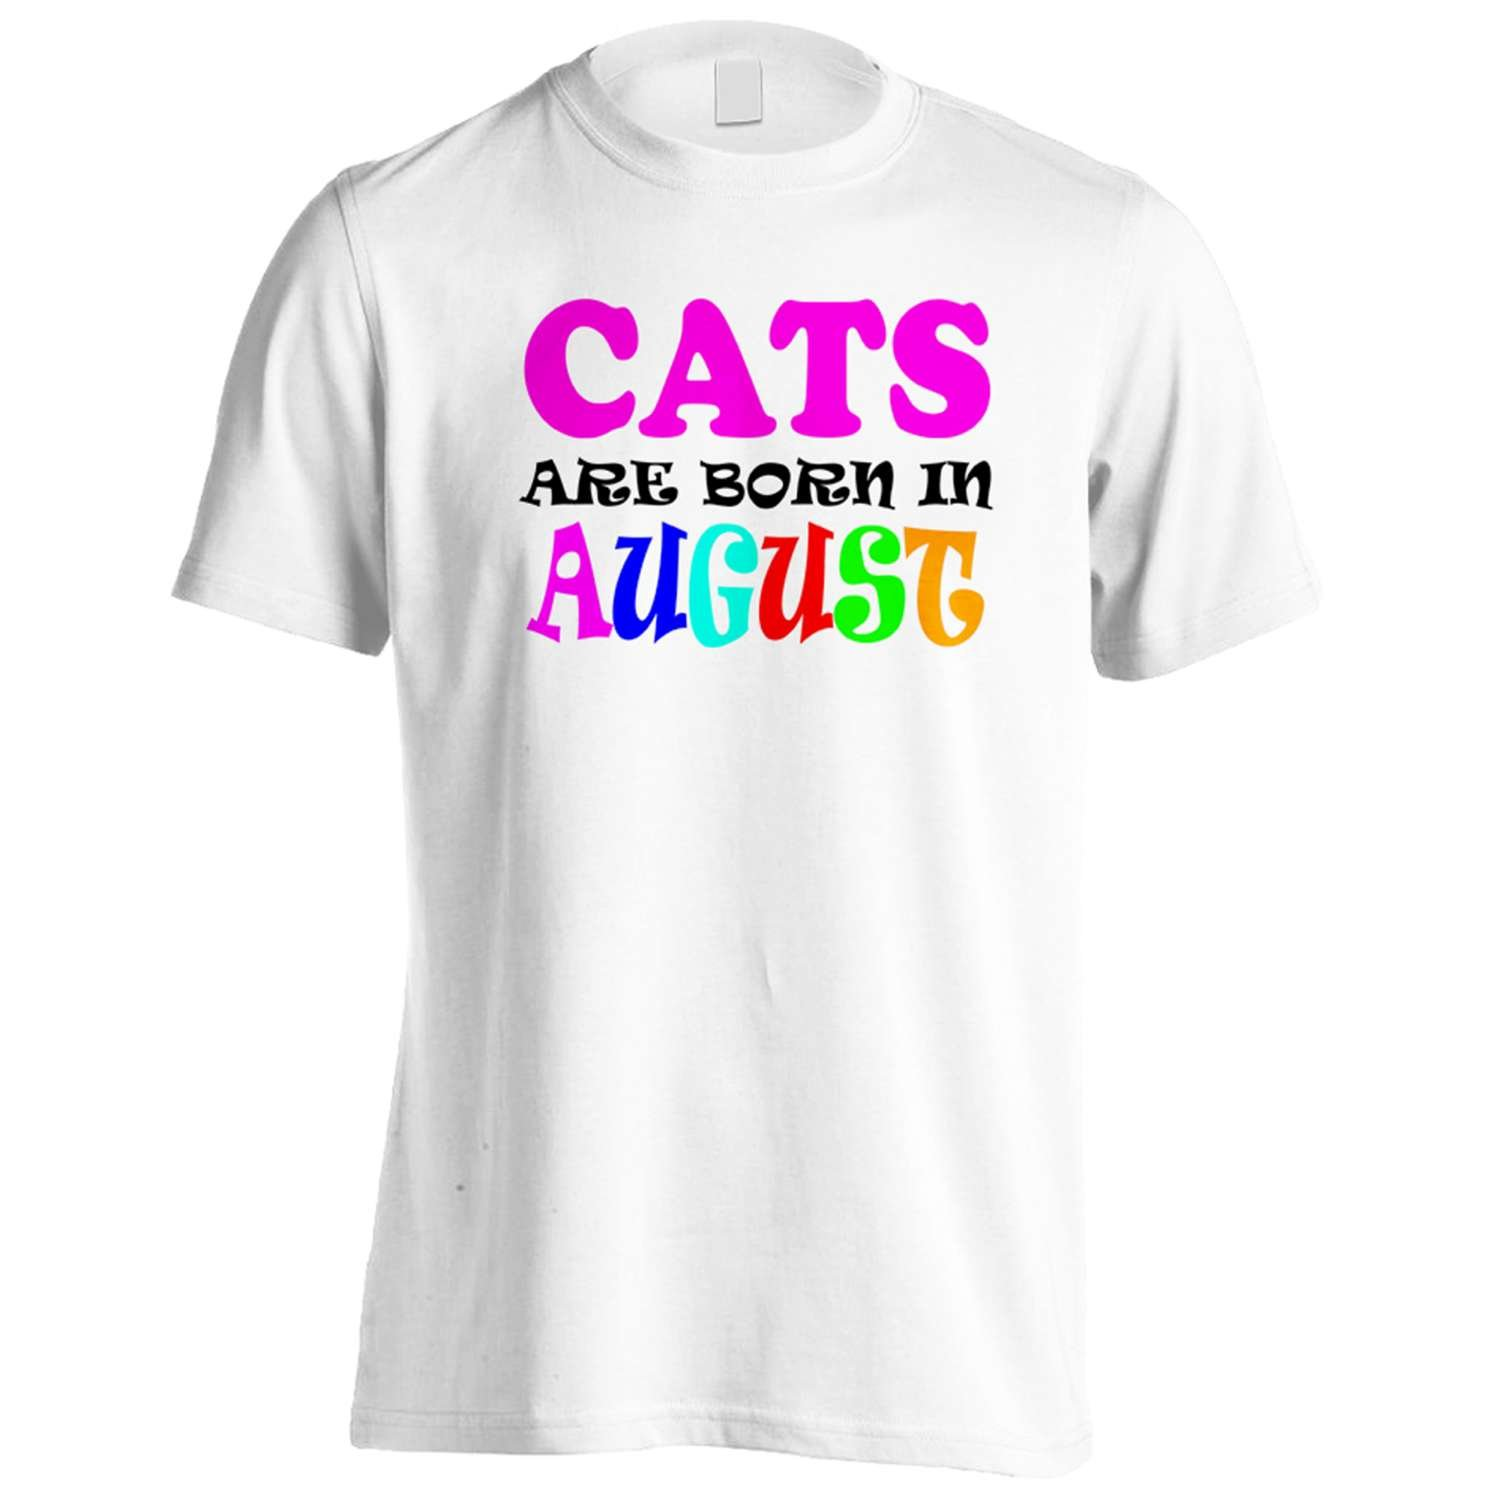 CATS ARE BORN IN AUGUST FUNNY Men's T-Shirt Tee v85m